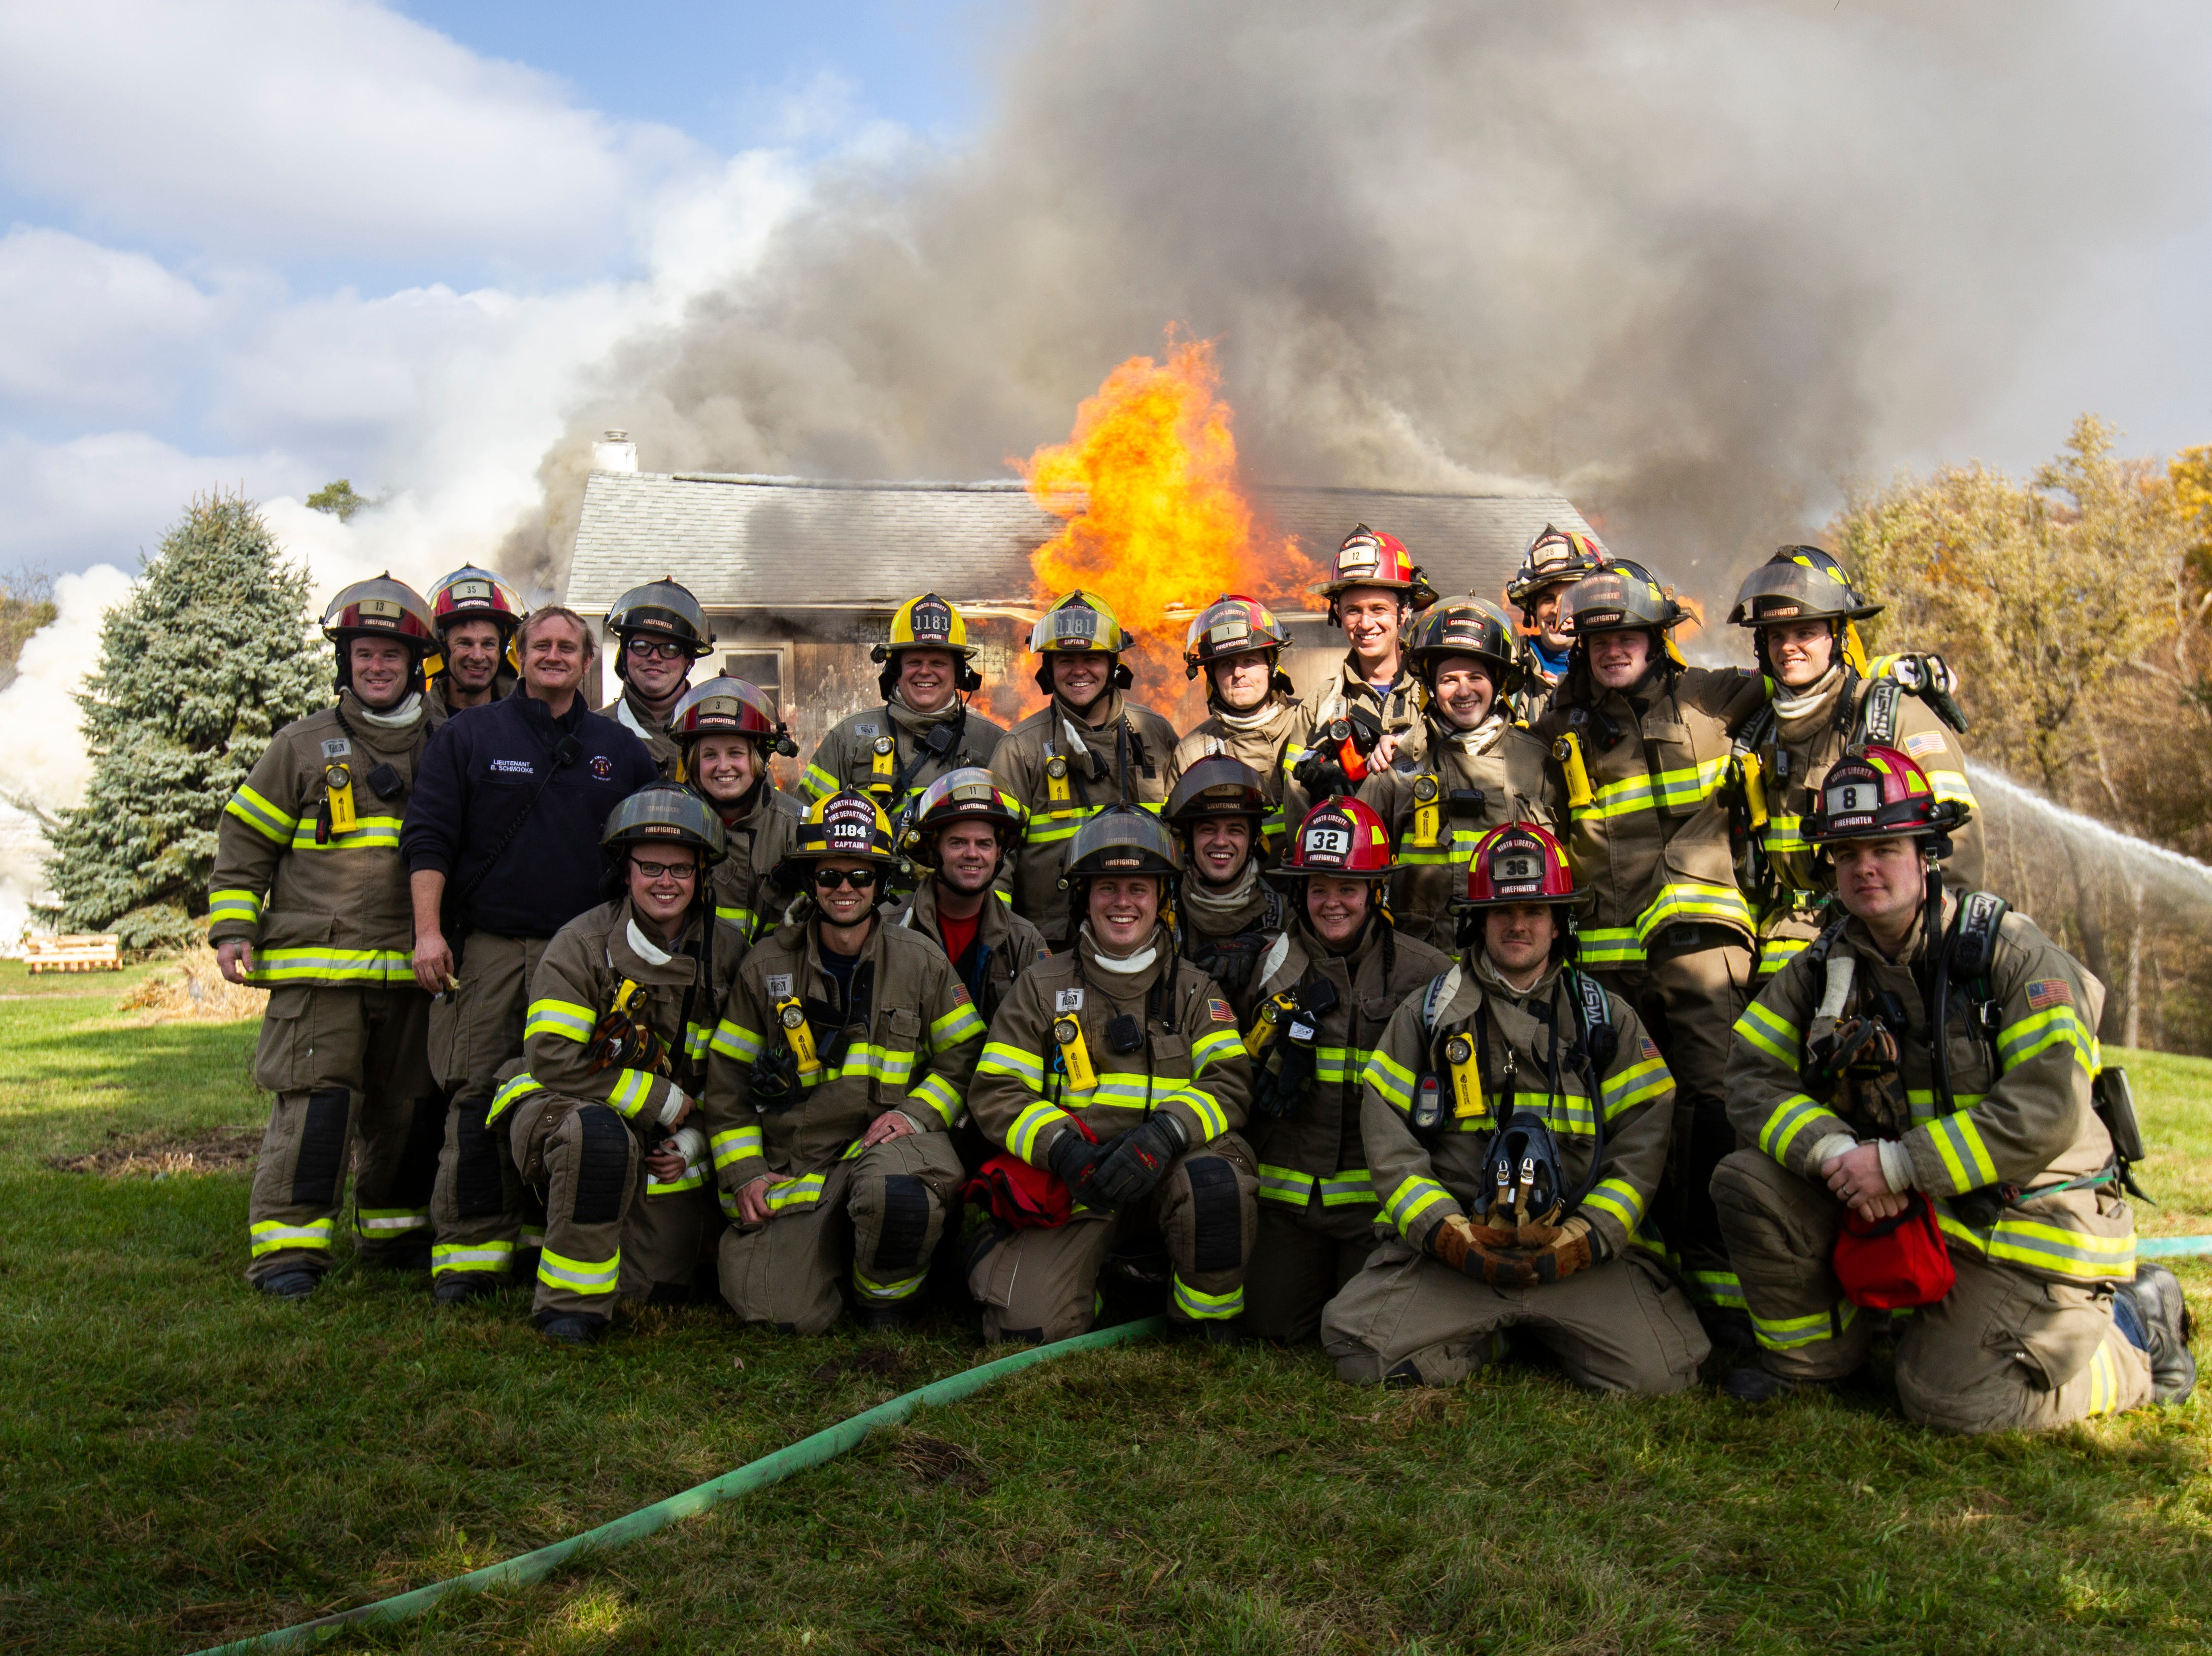 North Liberty Fire Department members pose for a photo during a fire training exercise of a farm house on Saturday, Oct. 27, 2018, on the east side of Liberty High School in North Liberty.